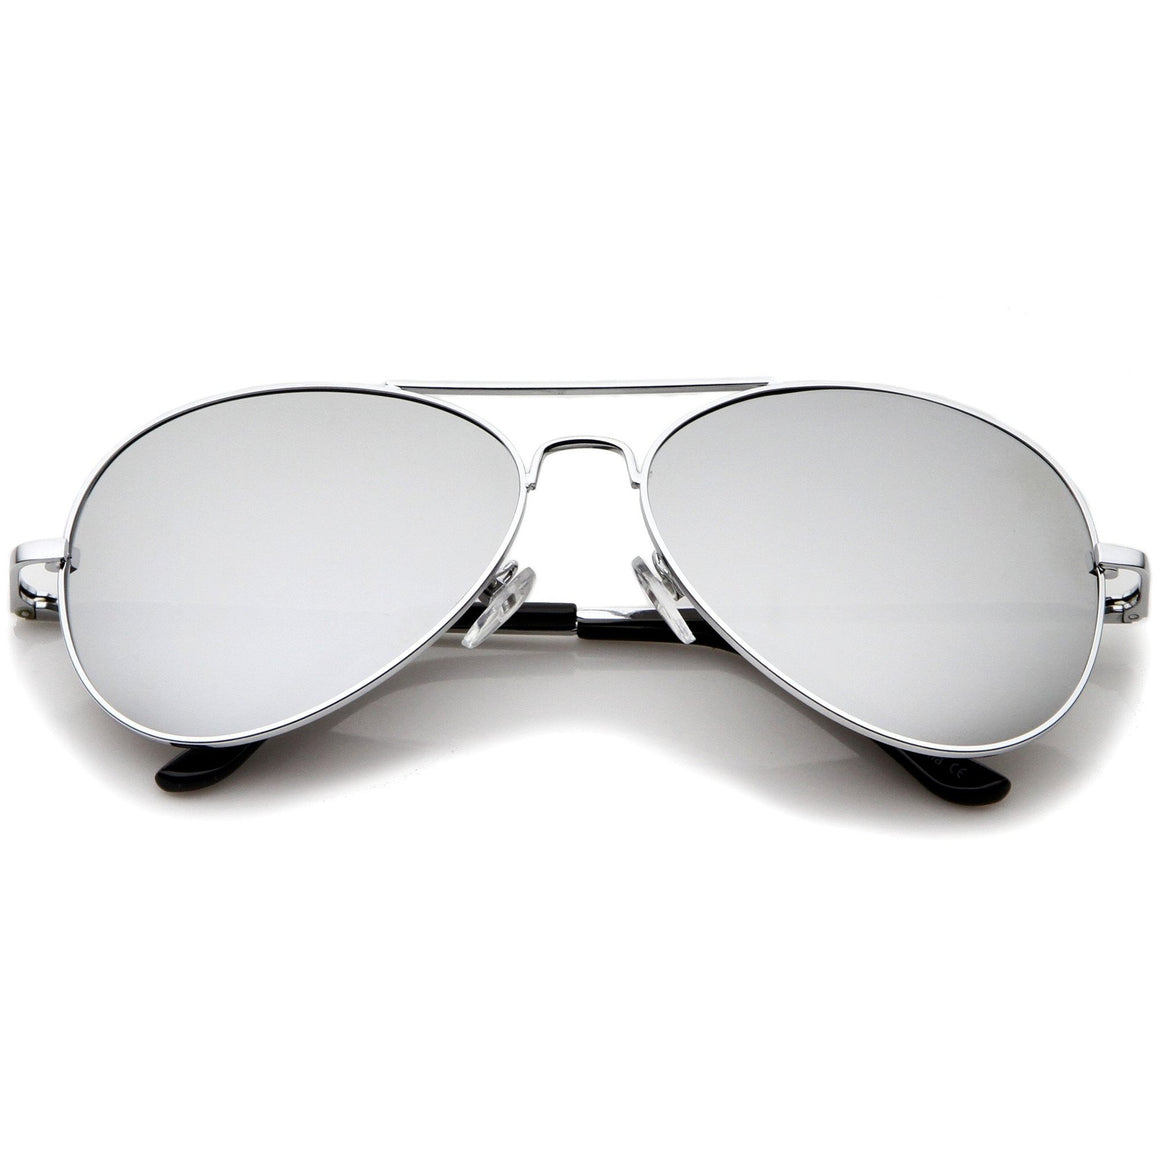 Large Silver Aviator Mirror Sunglasses - wholesalesunglasses.net